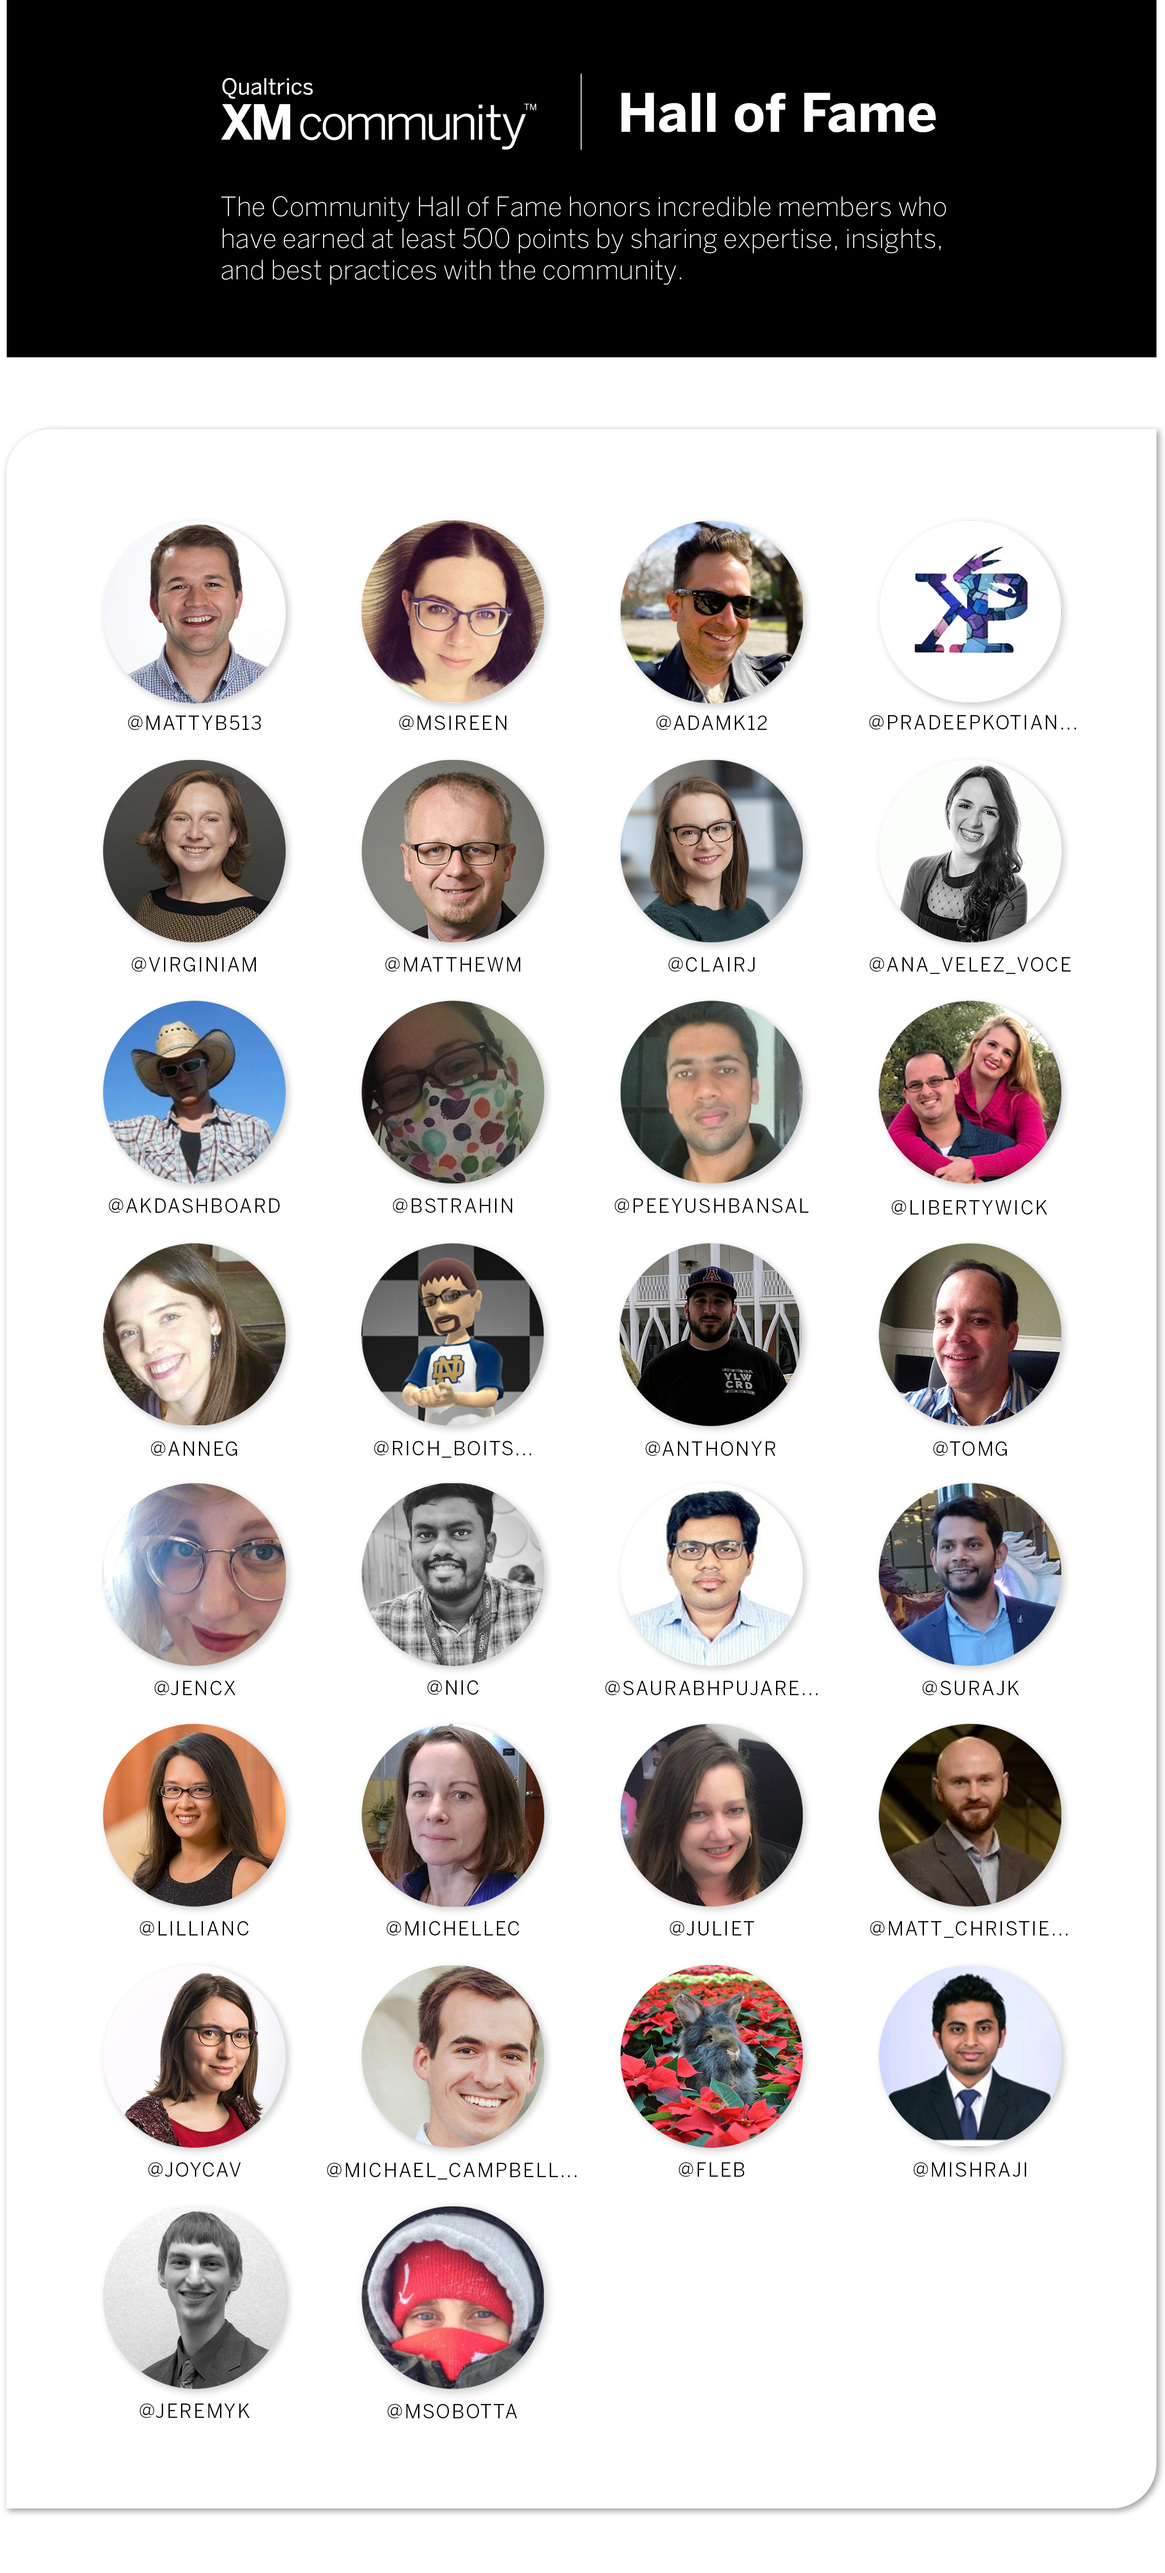 XM Community Hall of Fame. The Community Hall of Fame honors incredible members who have earned at least 500 points by sharing expertise, insights, and best practices with the community.